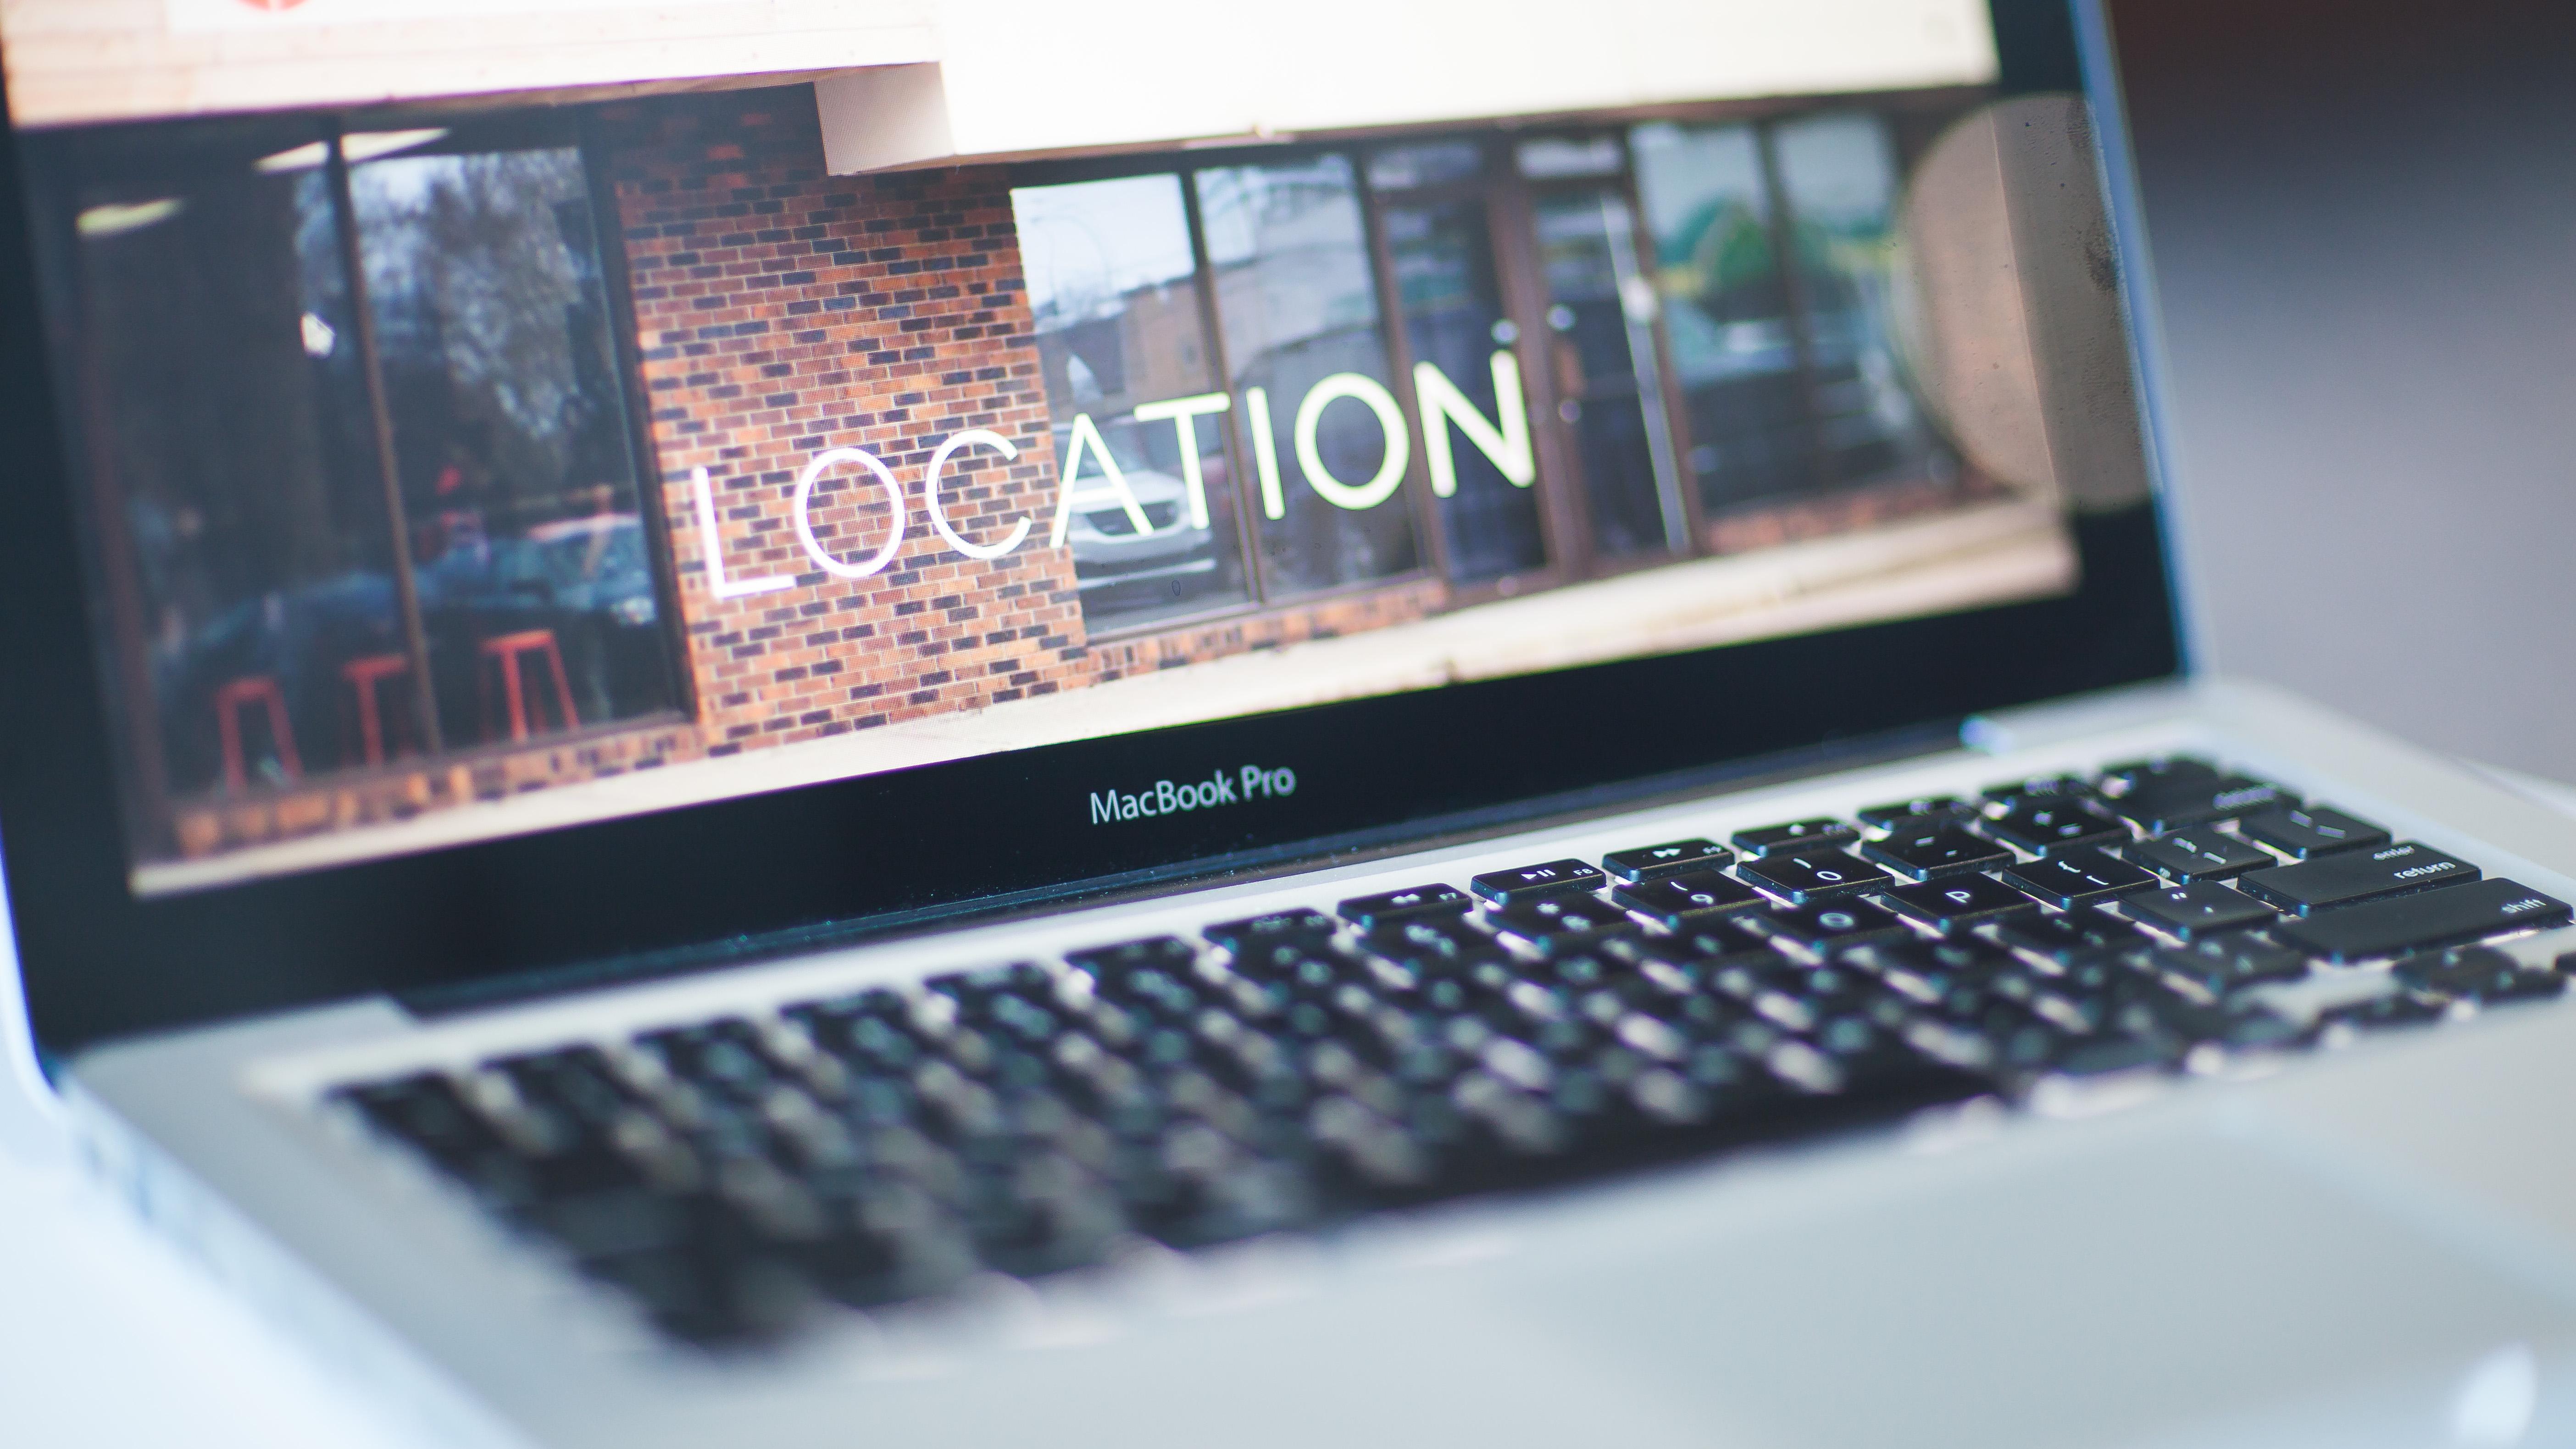 62% of church websites do not have easy to find new visitor information